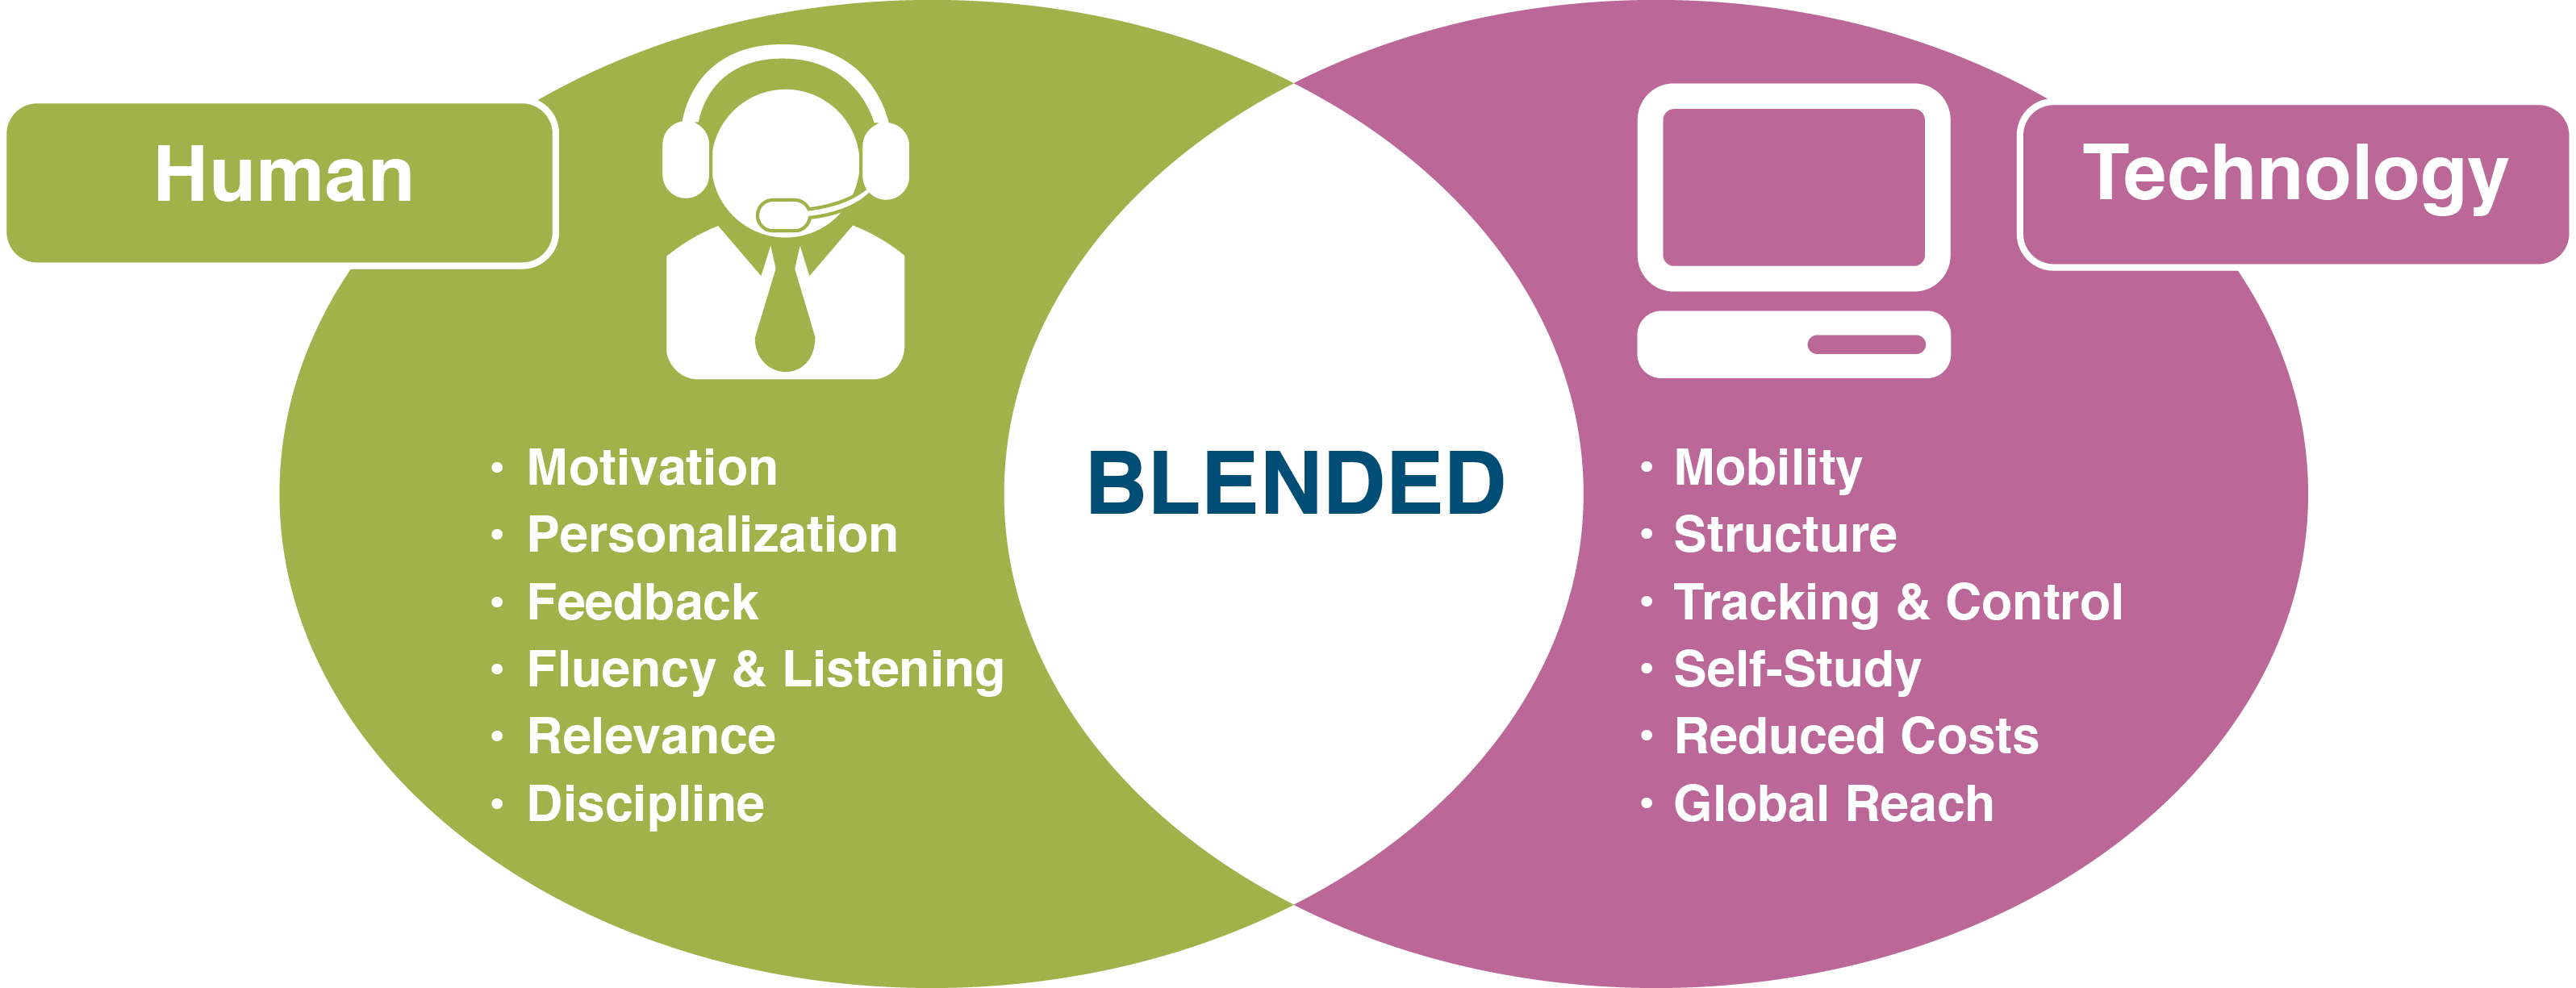 Blended-Learning-Graphic-e1446519597803